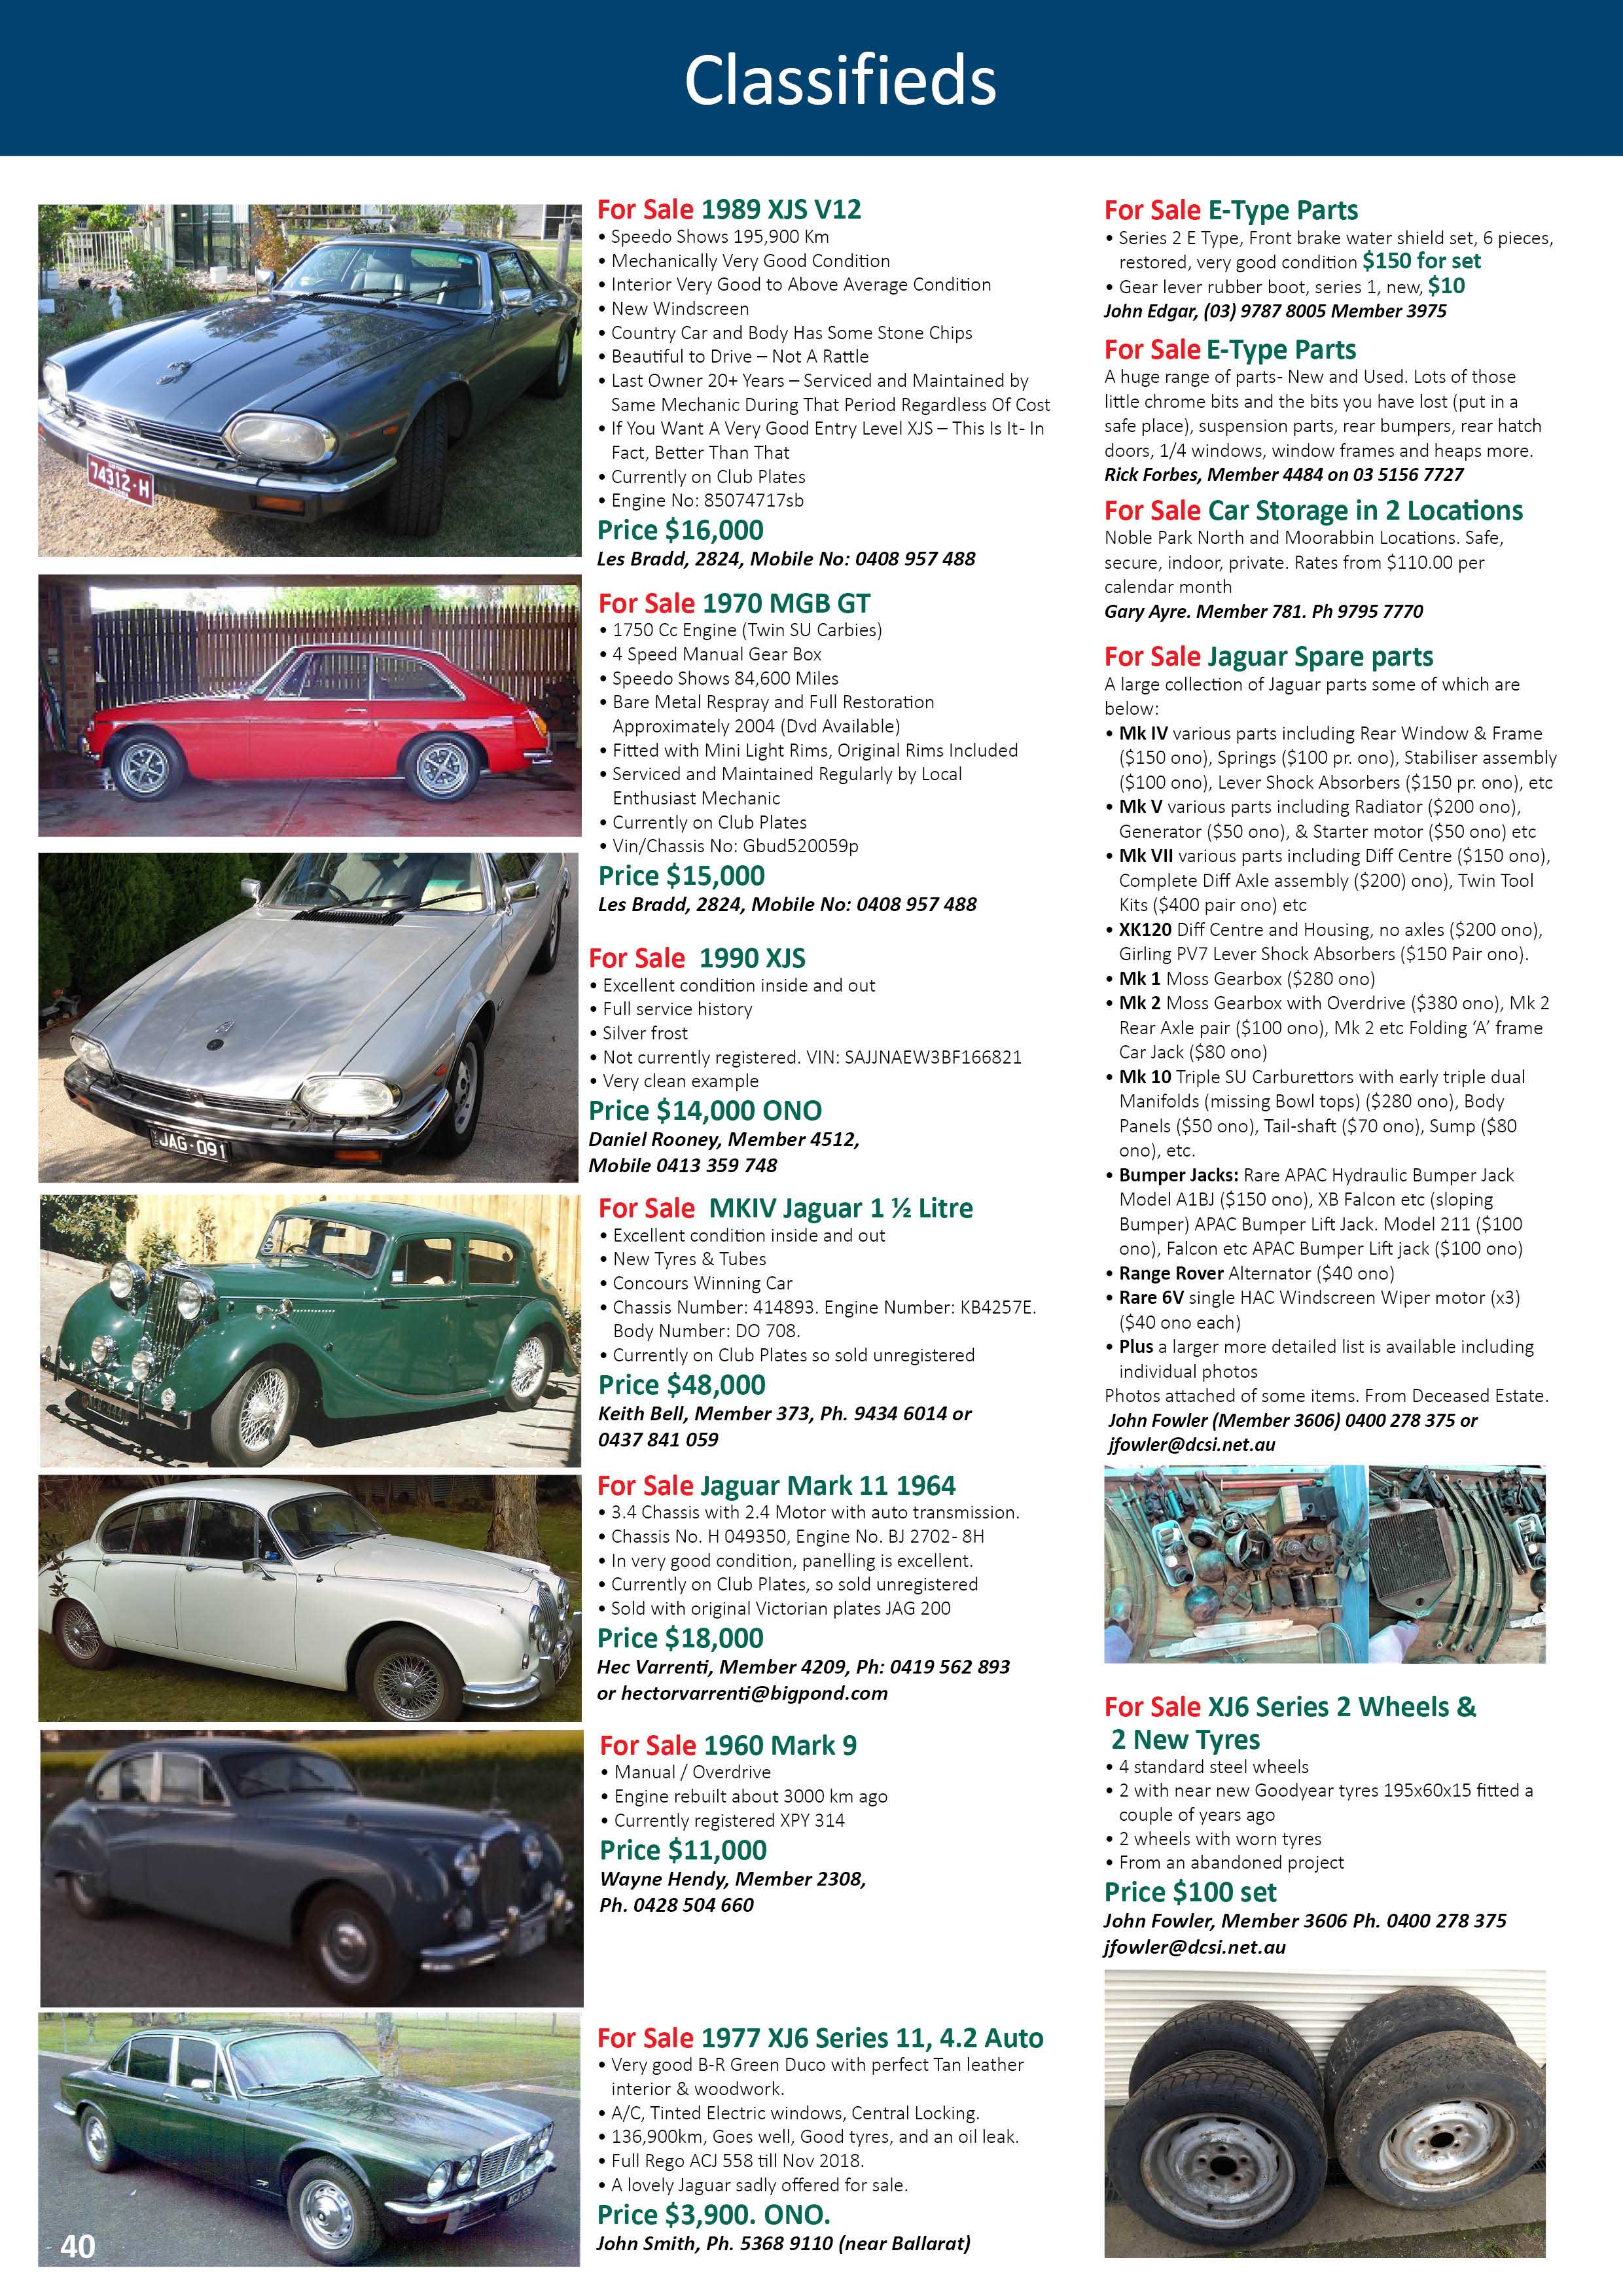 CLASSIFIEDS SEPTEMBER 2018 1